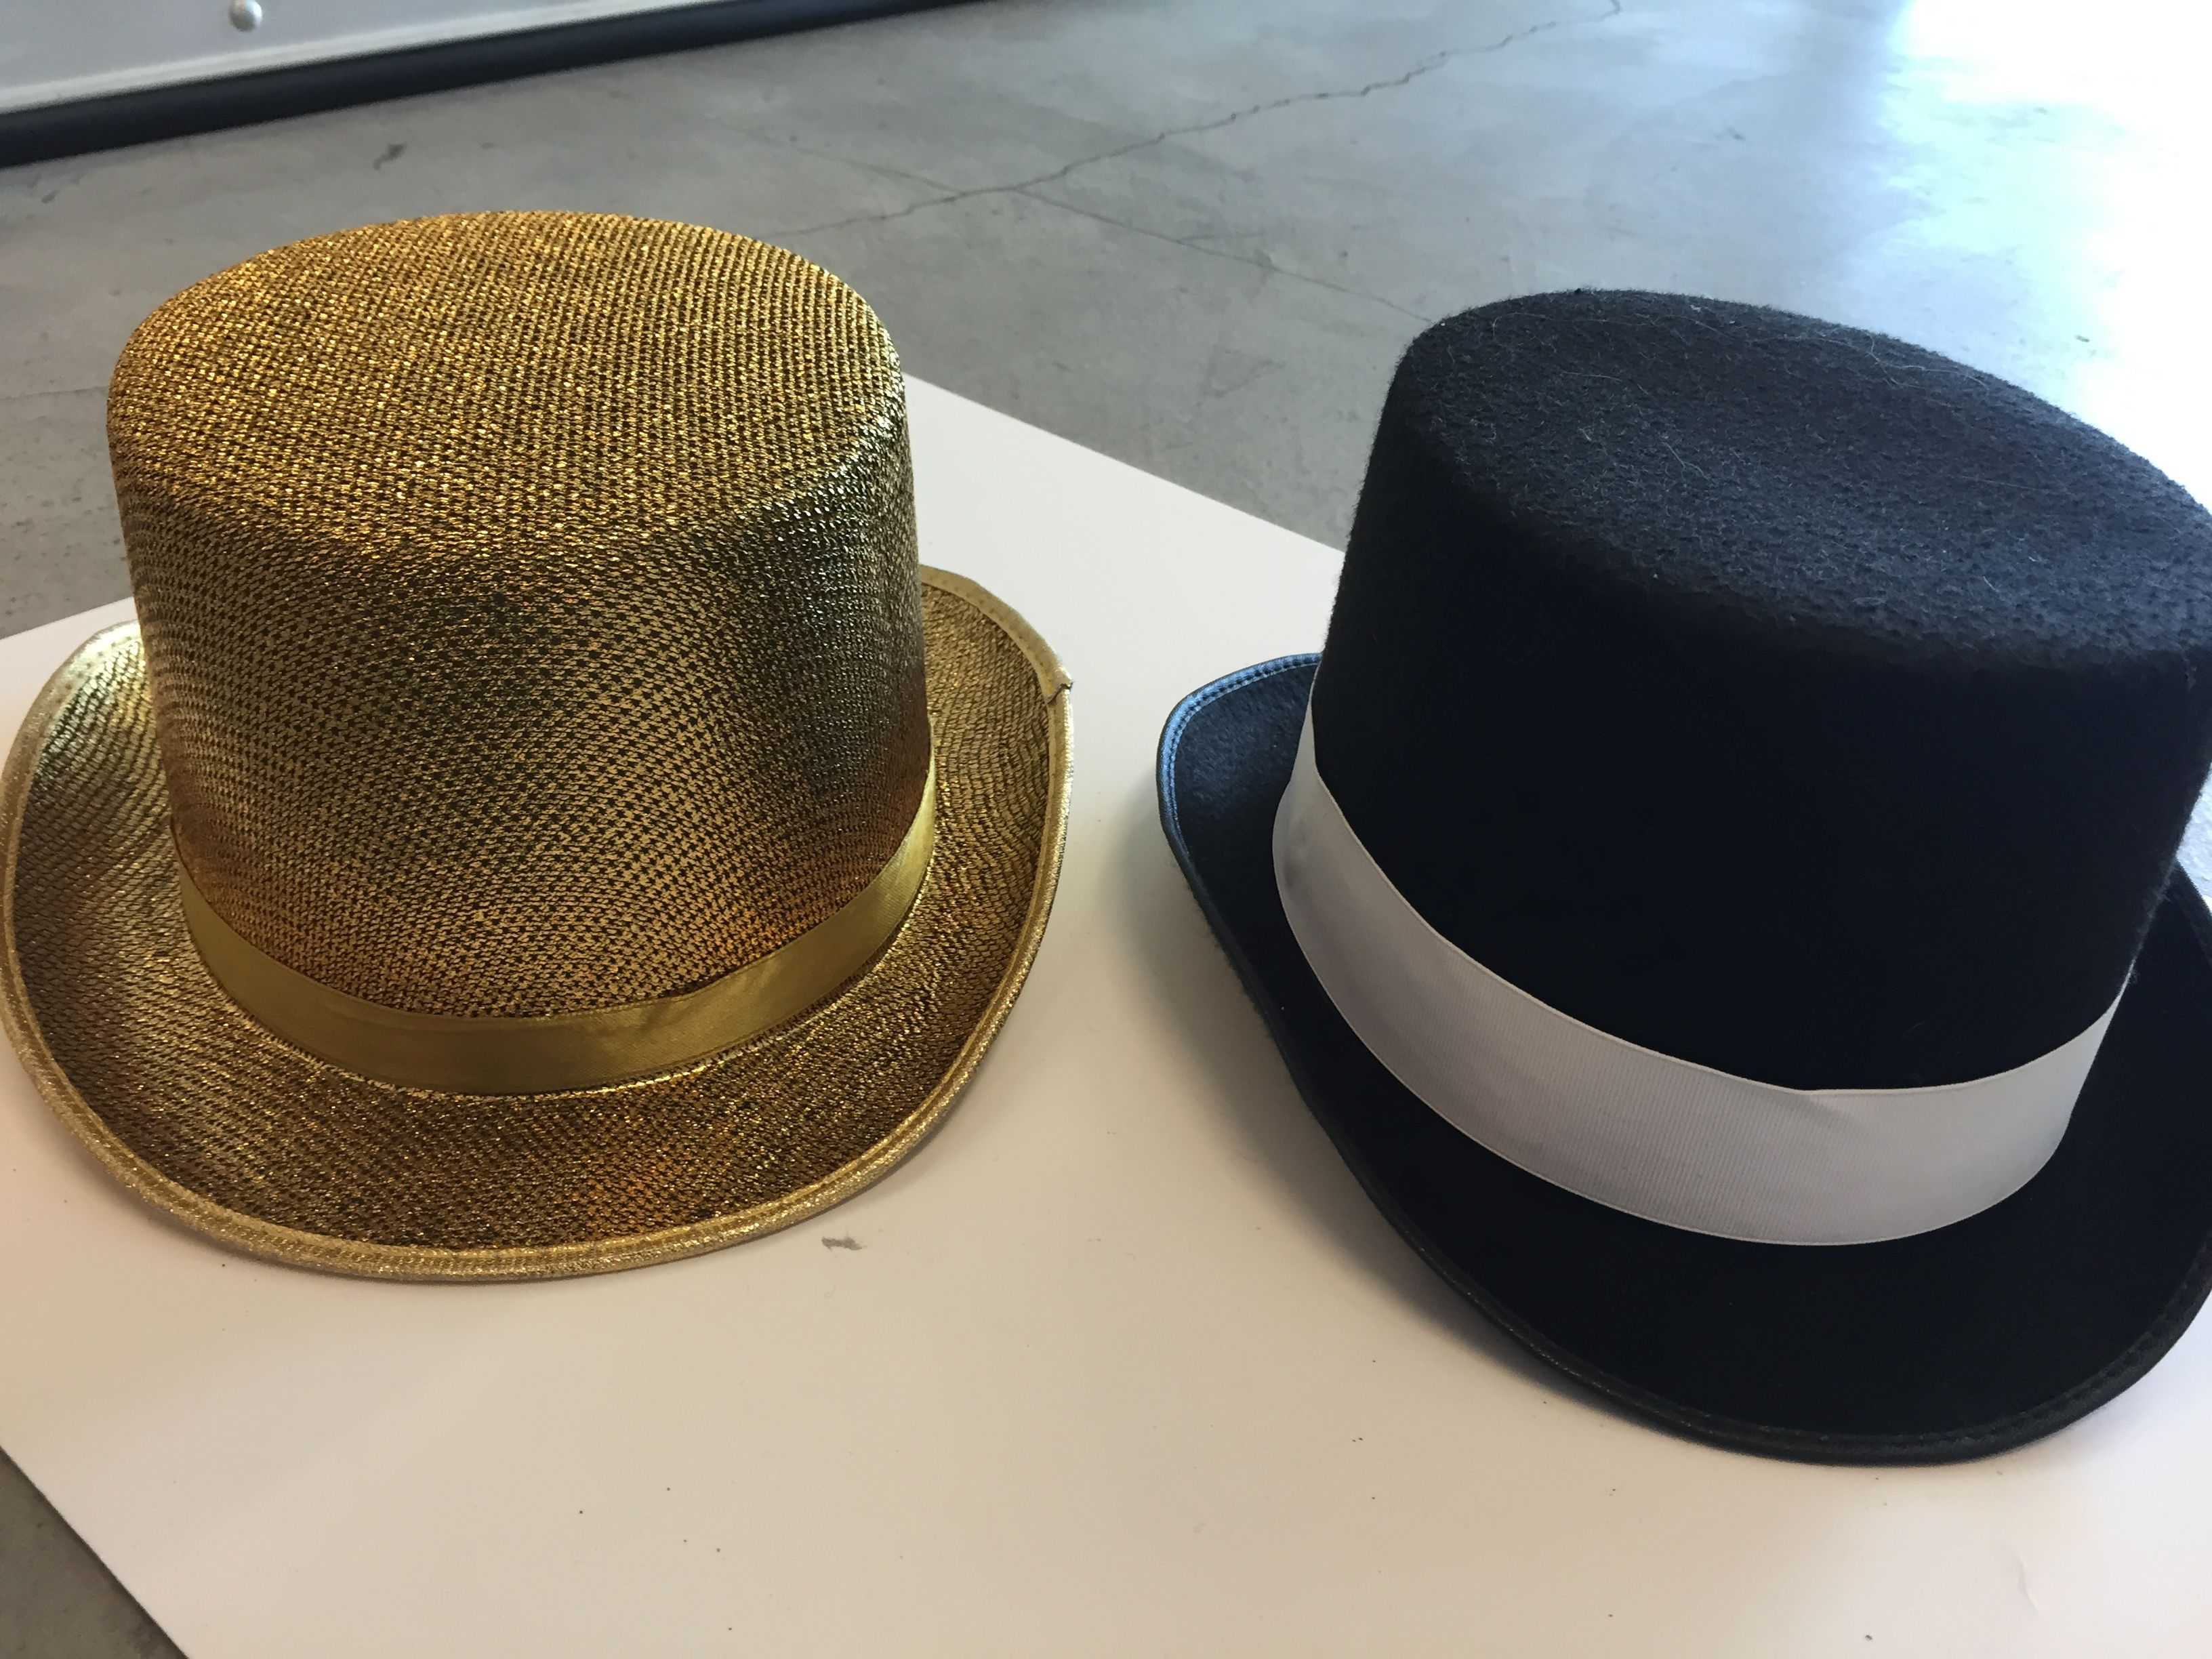 69d83a0697b 1 gold sparkly top hat